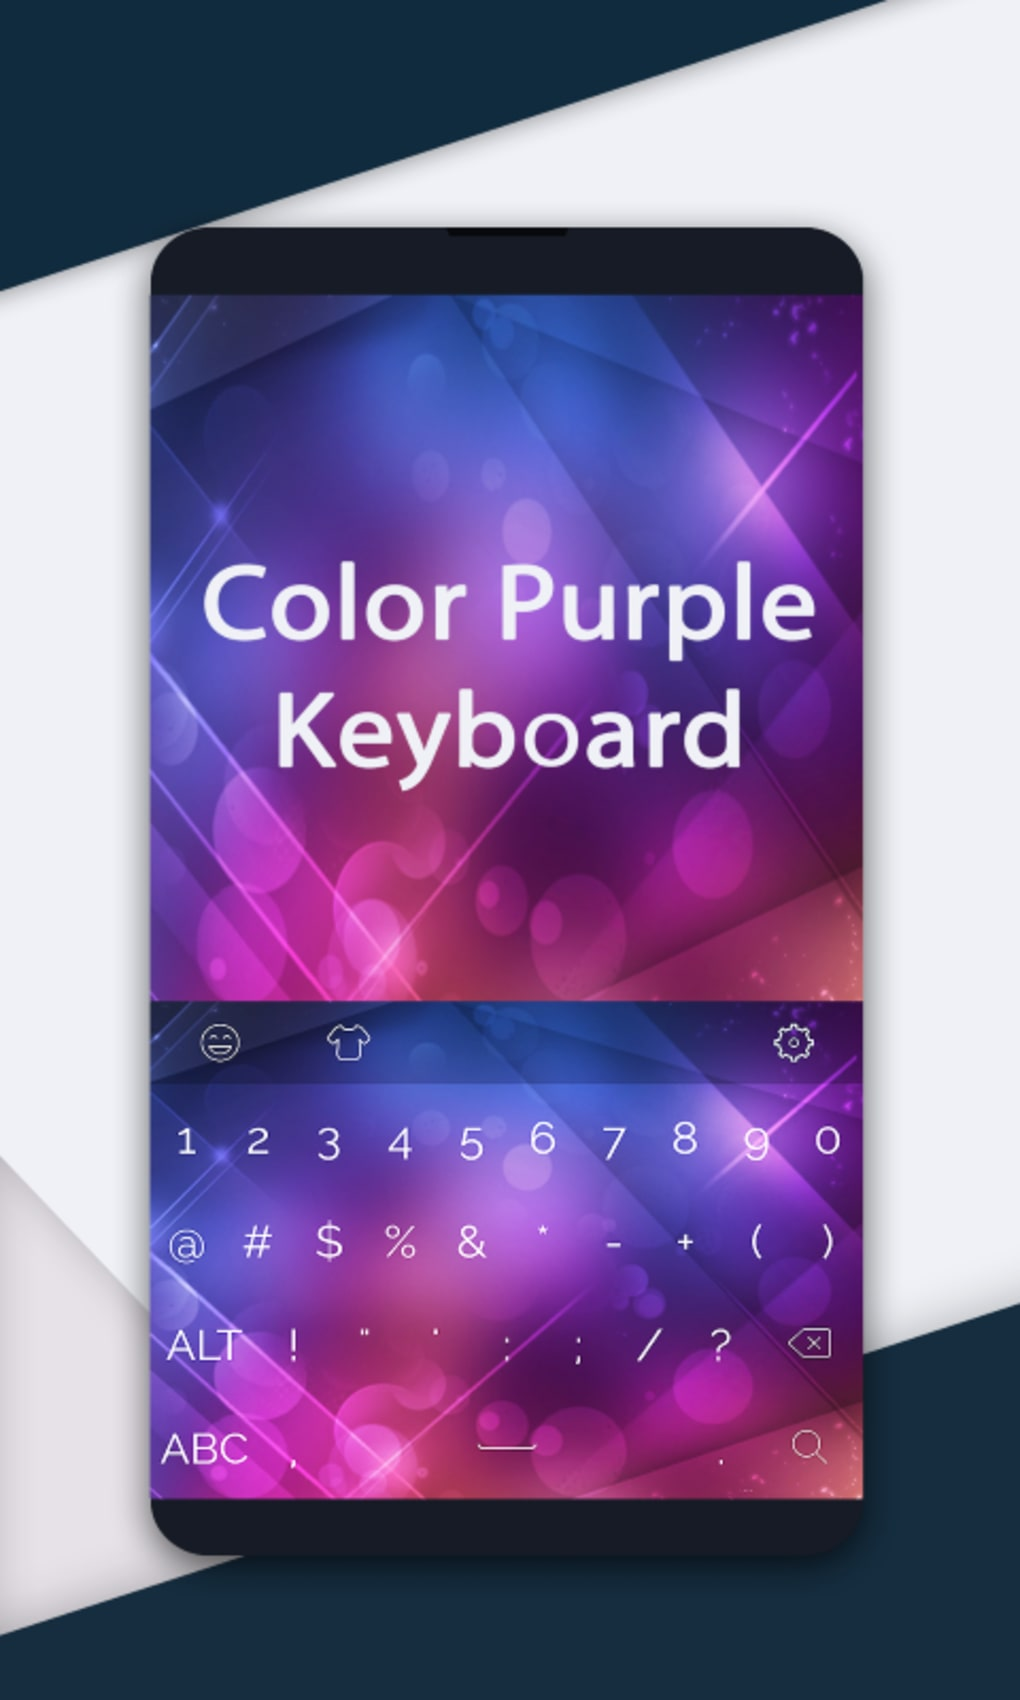 Color Purple Keyboard